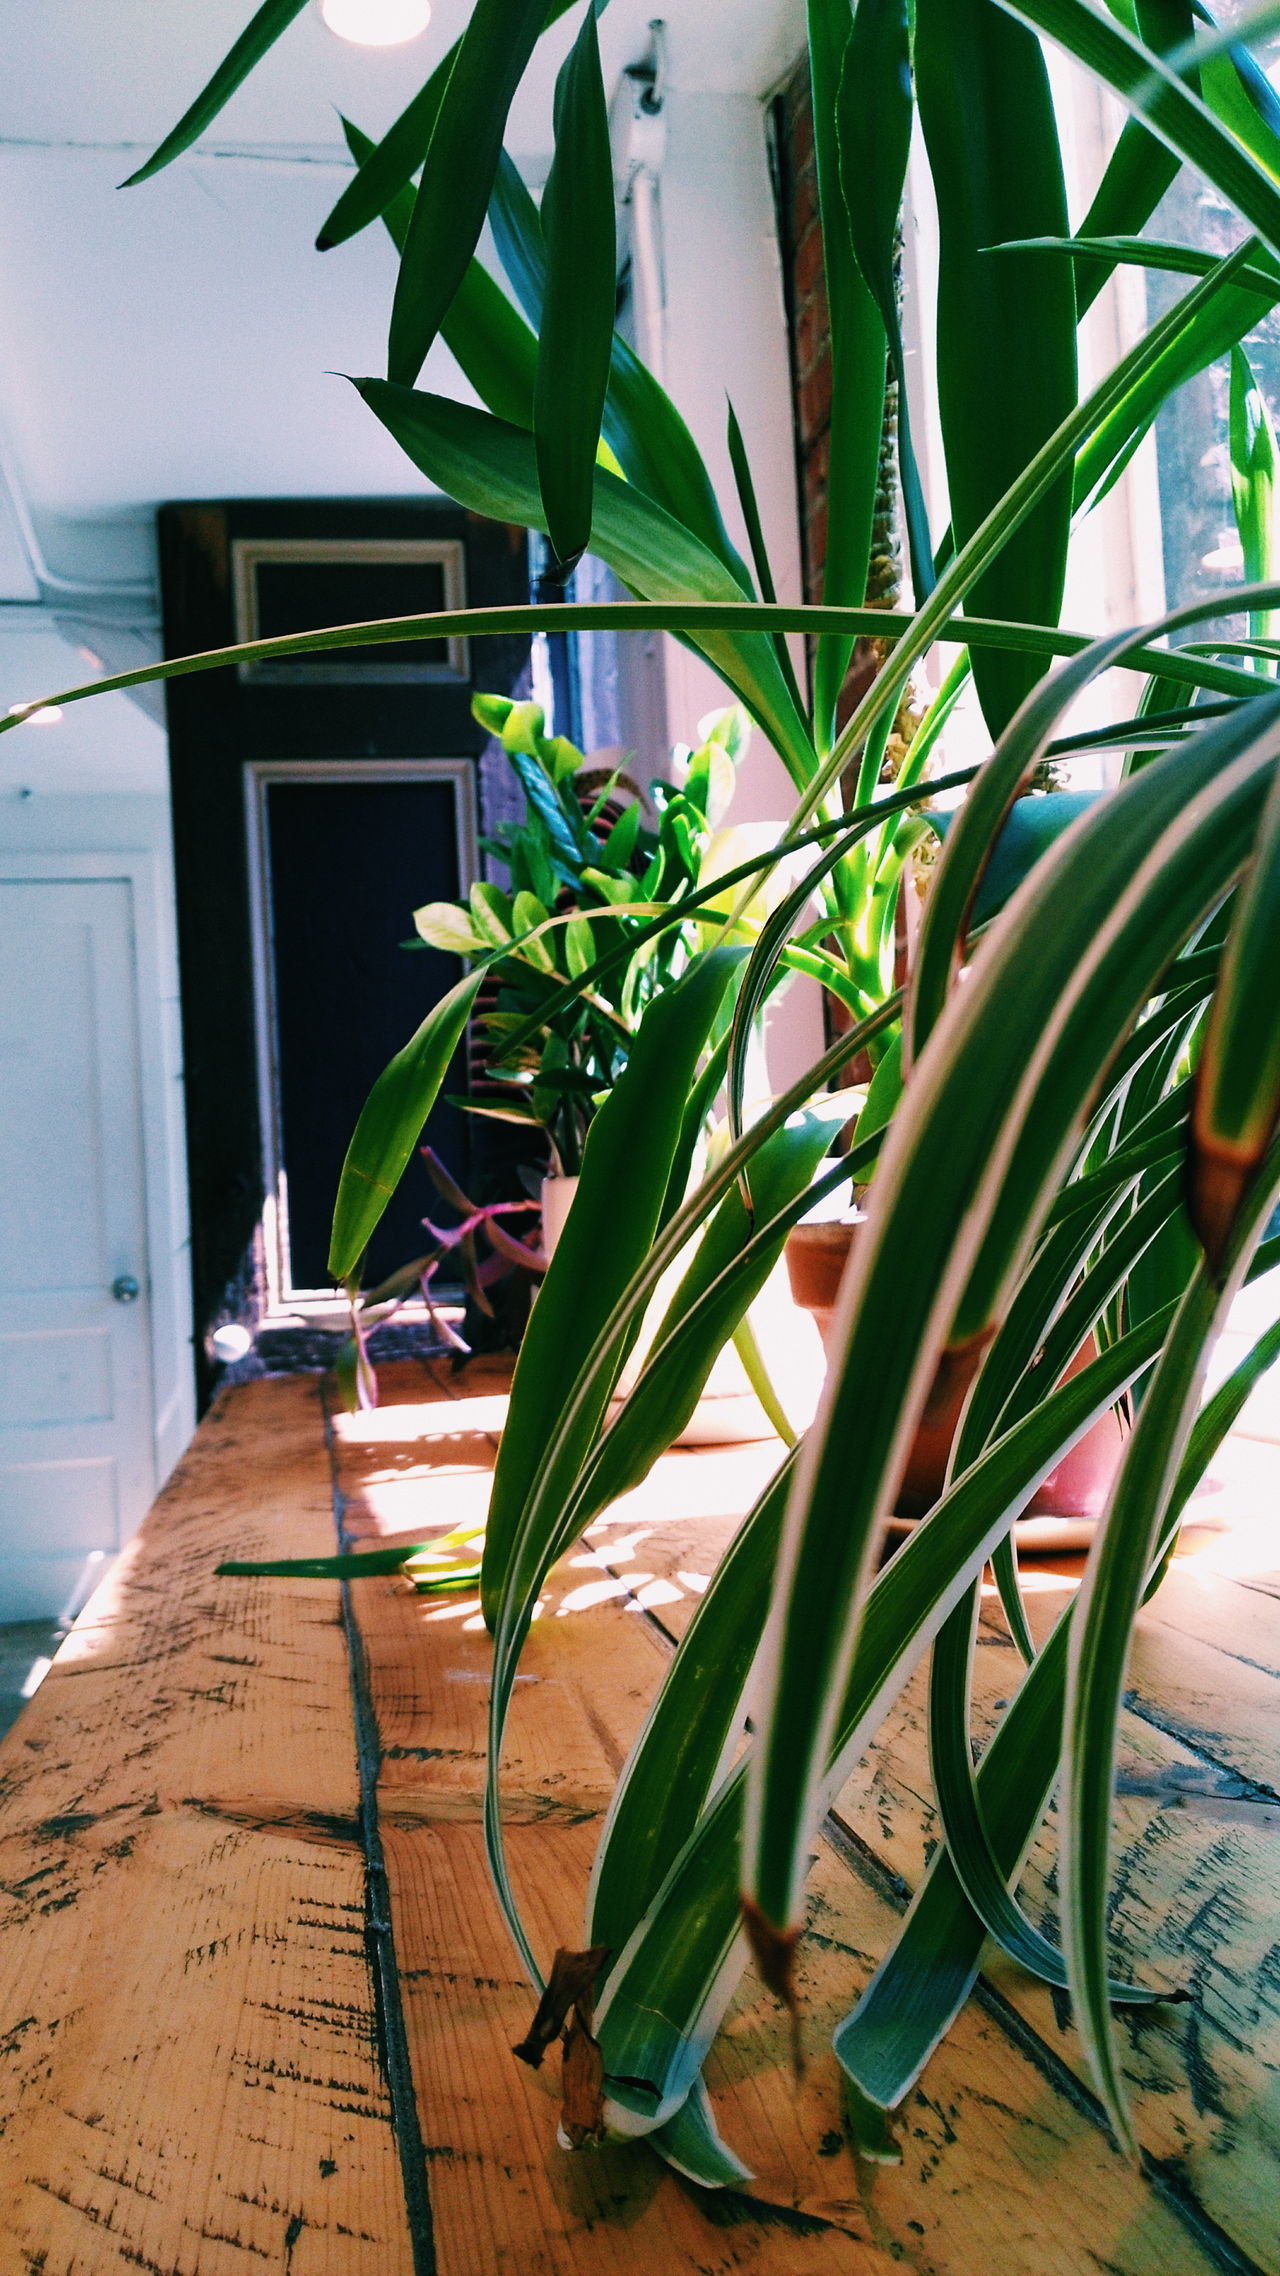 Day Indoors  Leaf Plant No People Nature Close-up Plants Visual Feast Summer Inside Photography Natural Light Photooftheday Light And Shadow Lifestyle Leafs Photography Patterns In Nature Indoors  Plant Sunlight Sunbeam Sunshine Wood - Material Wooden Table Potted Plant